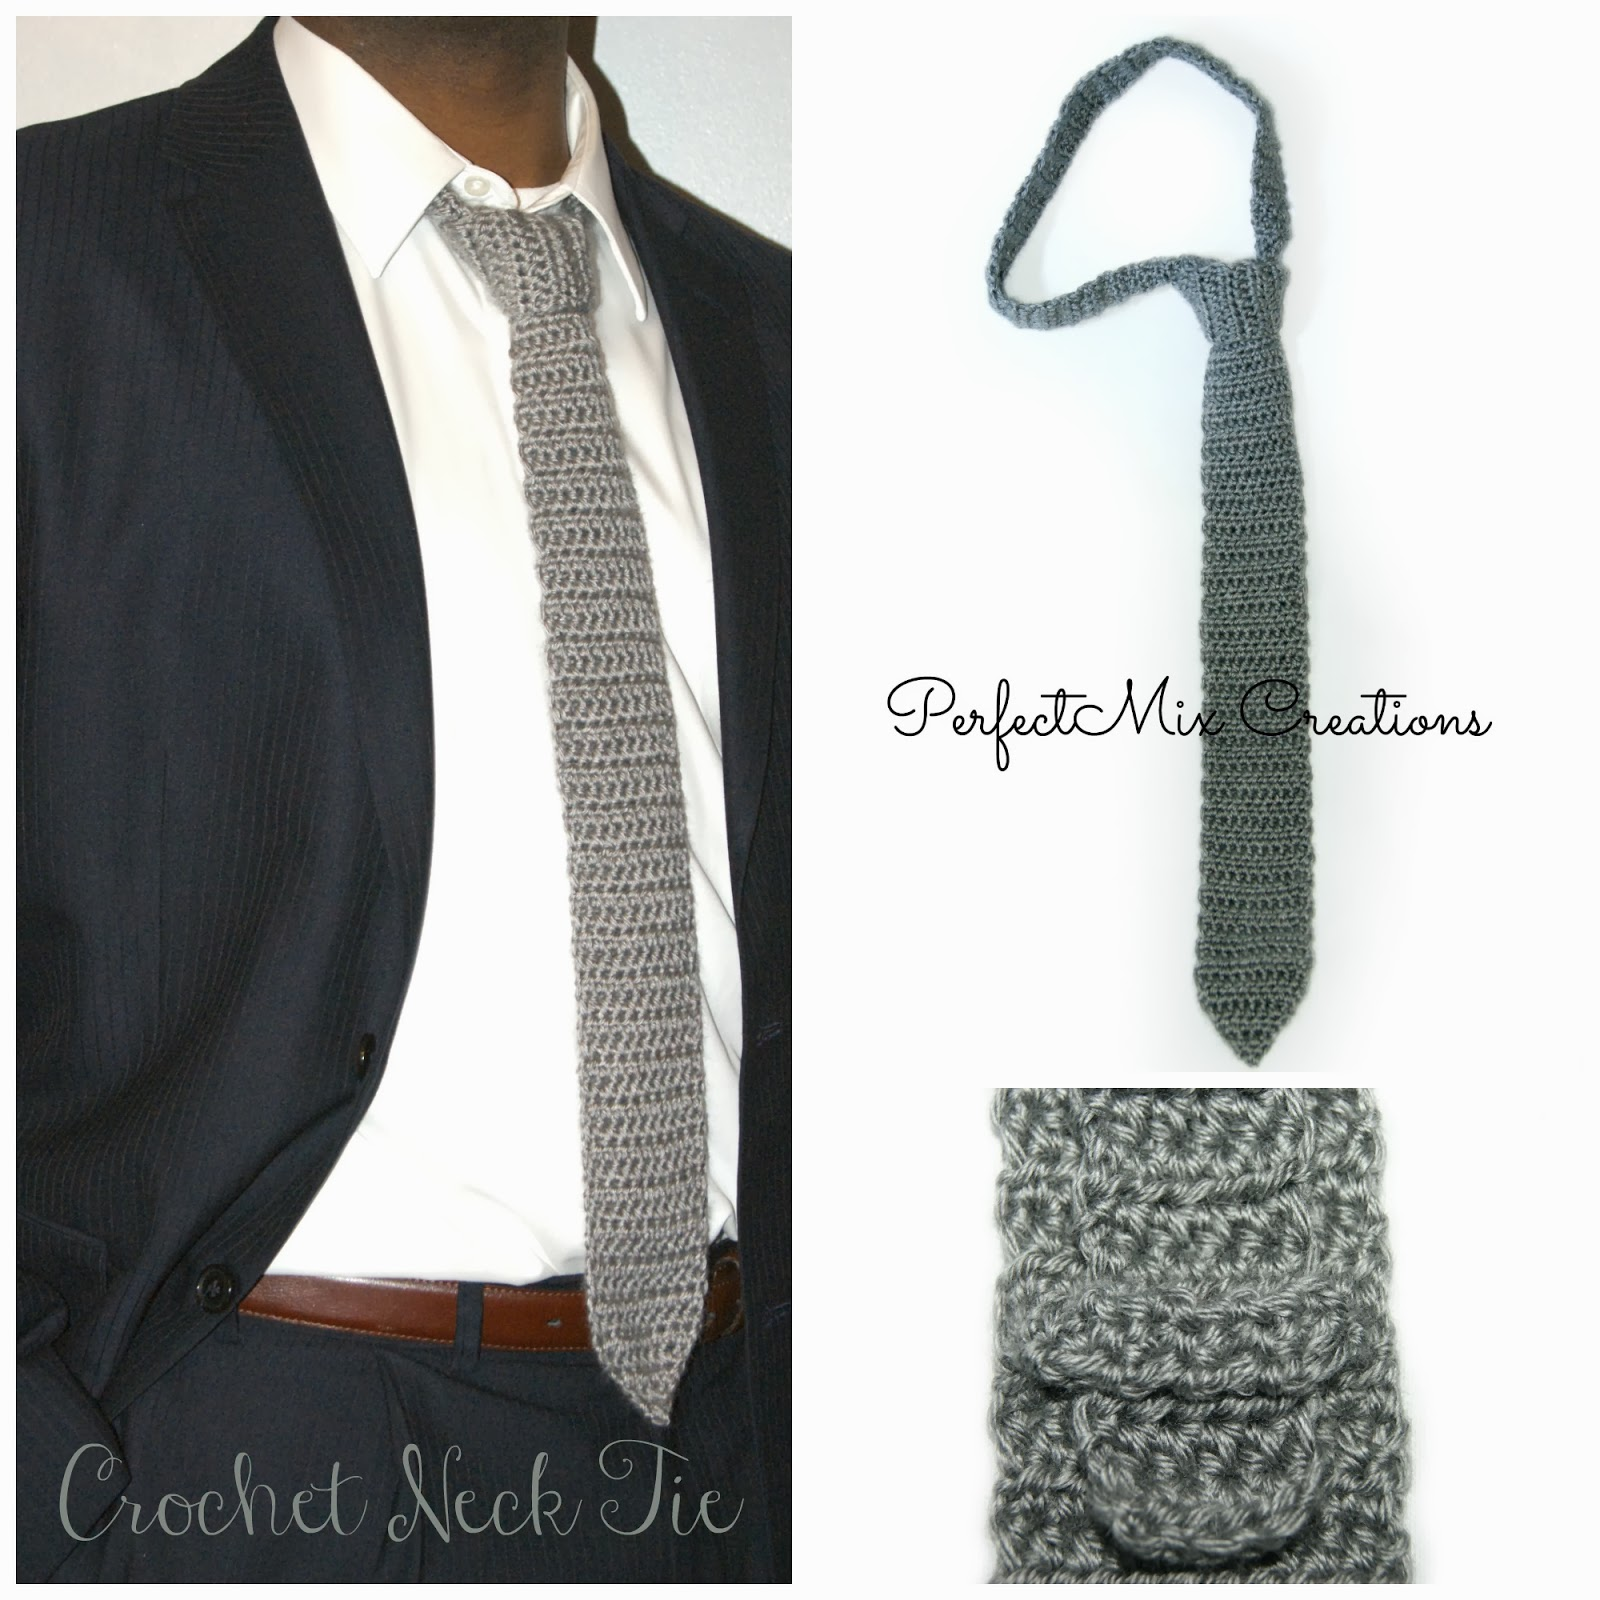 Mixin it up with DaPerfectMix\': Crochet Neck Tie Pattern